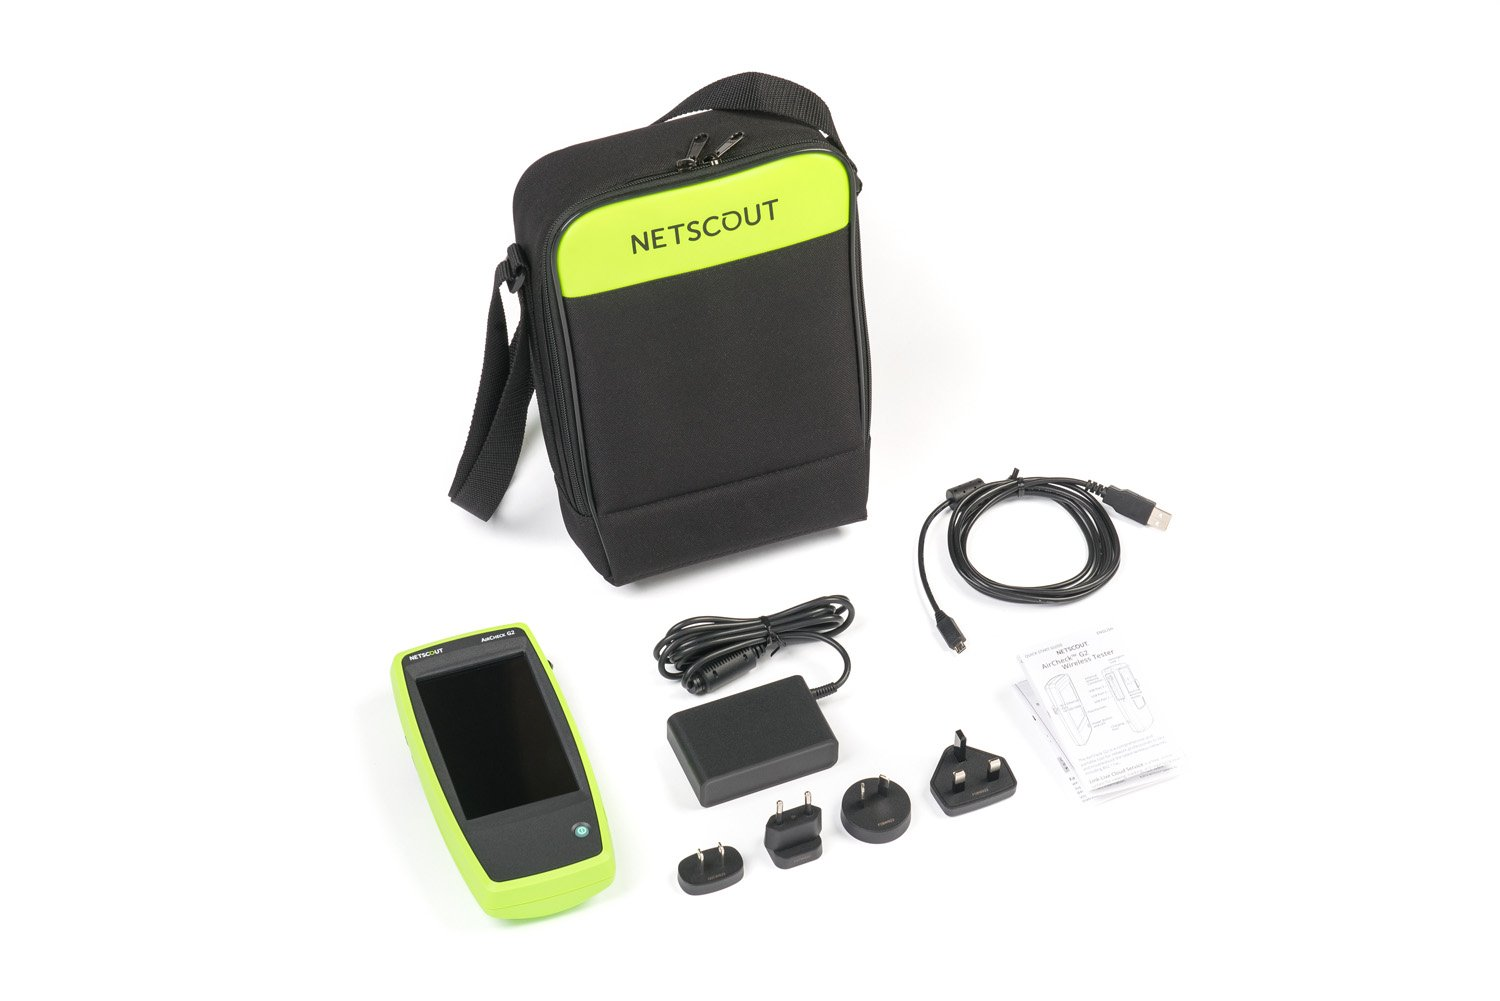 10. NETSCOUT AIRCHECK-G2 Wireless Tester, Wi-Fi Tester